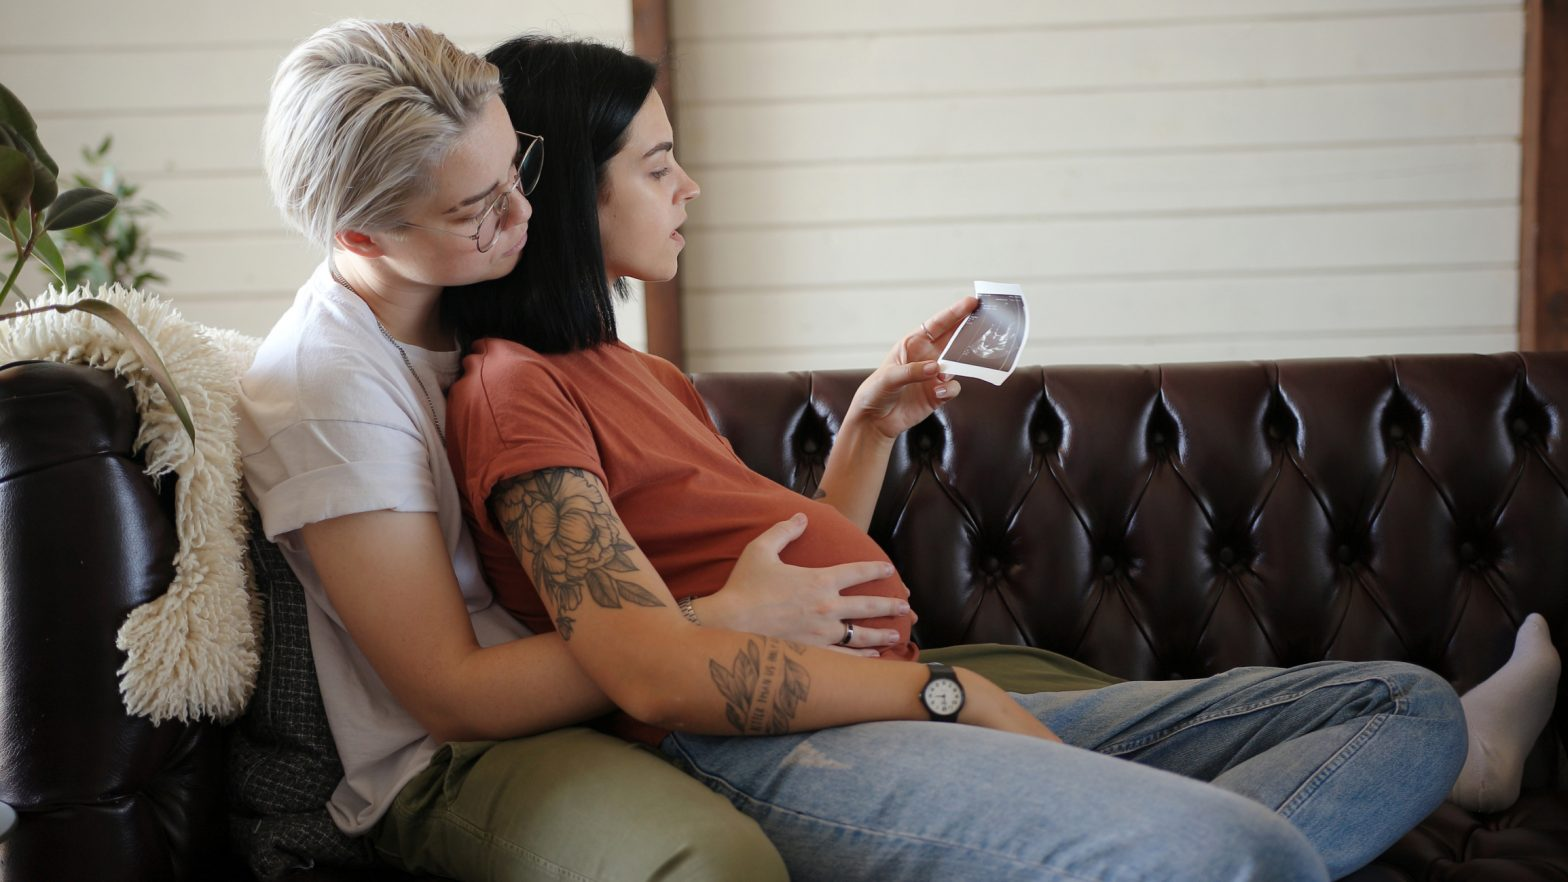 Blonde runs hands on pregnant girlfriend belly and brunette holds